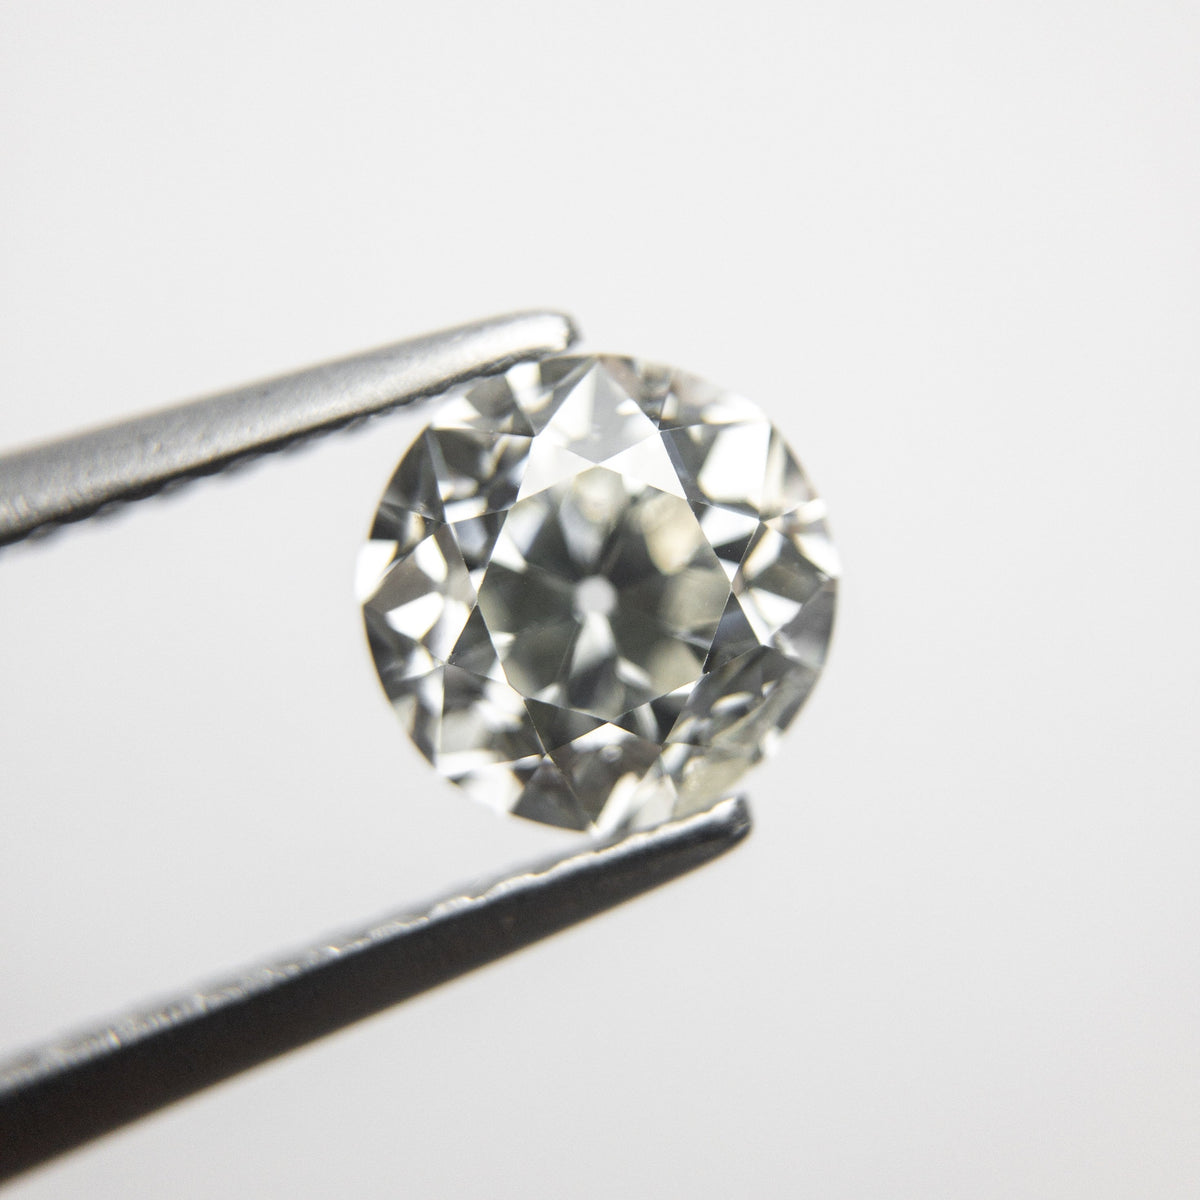 1.17ct 6.47x6.37x4.37mm SI2/I1+ J Old European Cut 18345-01